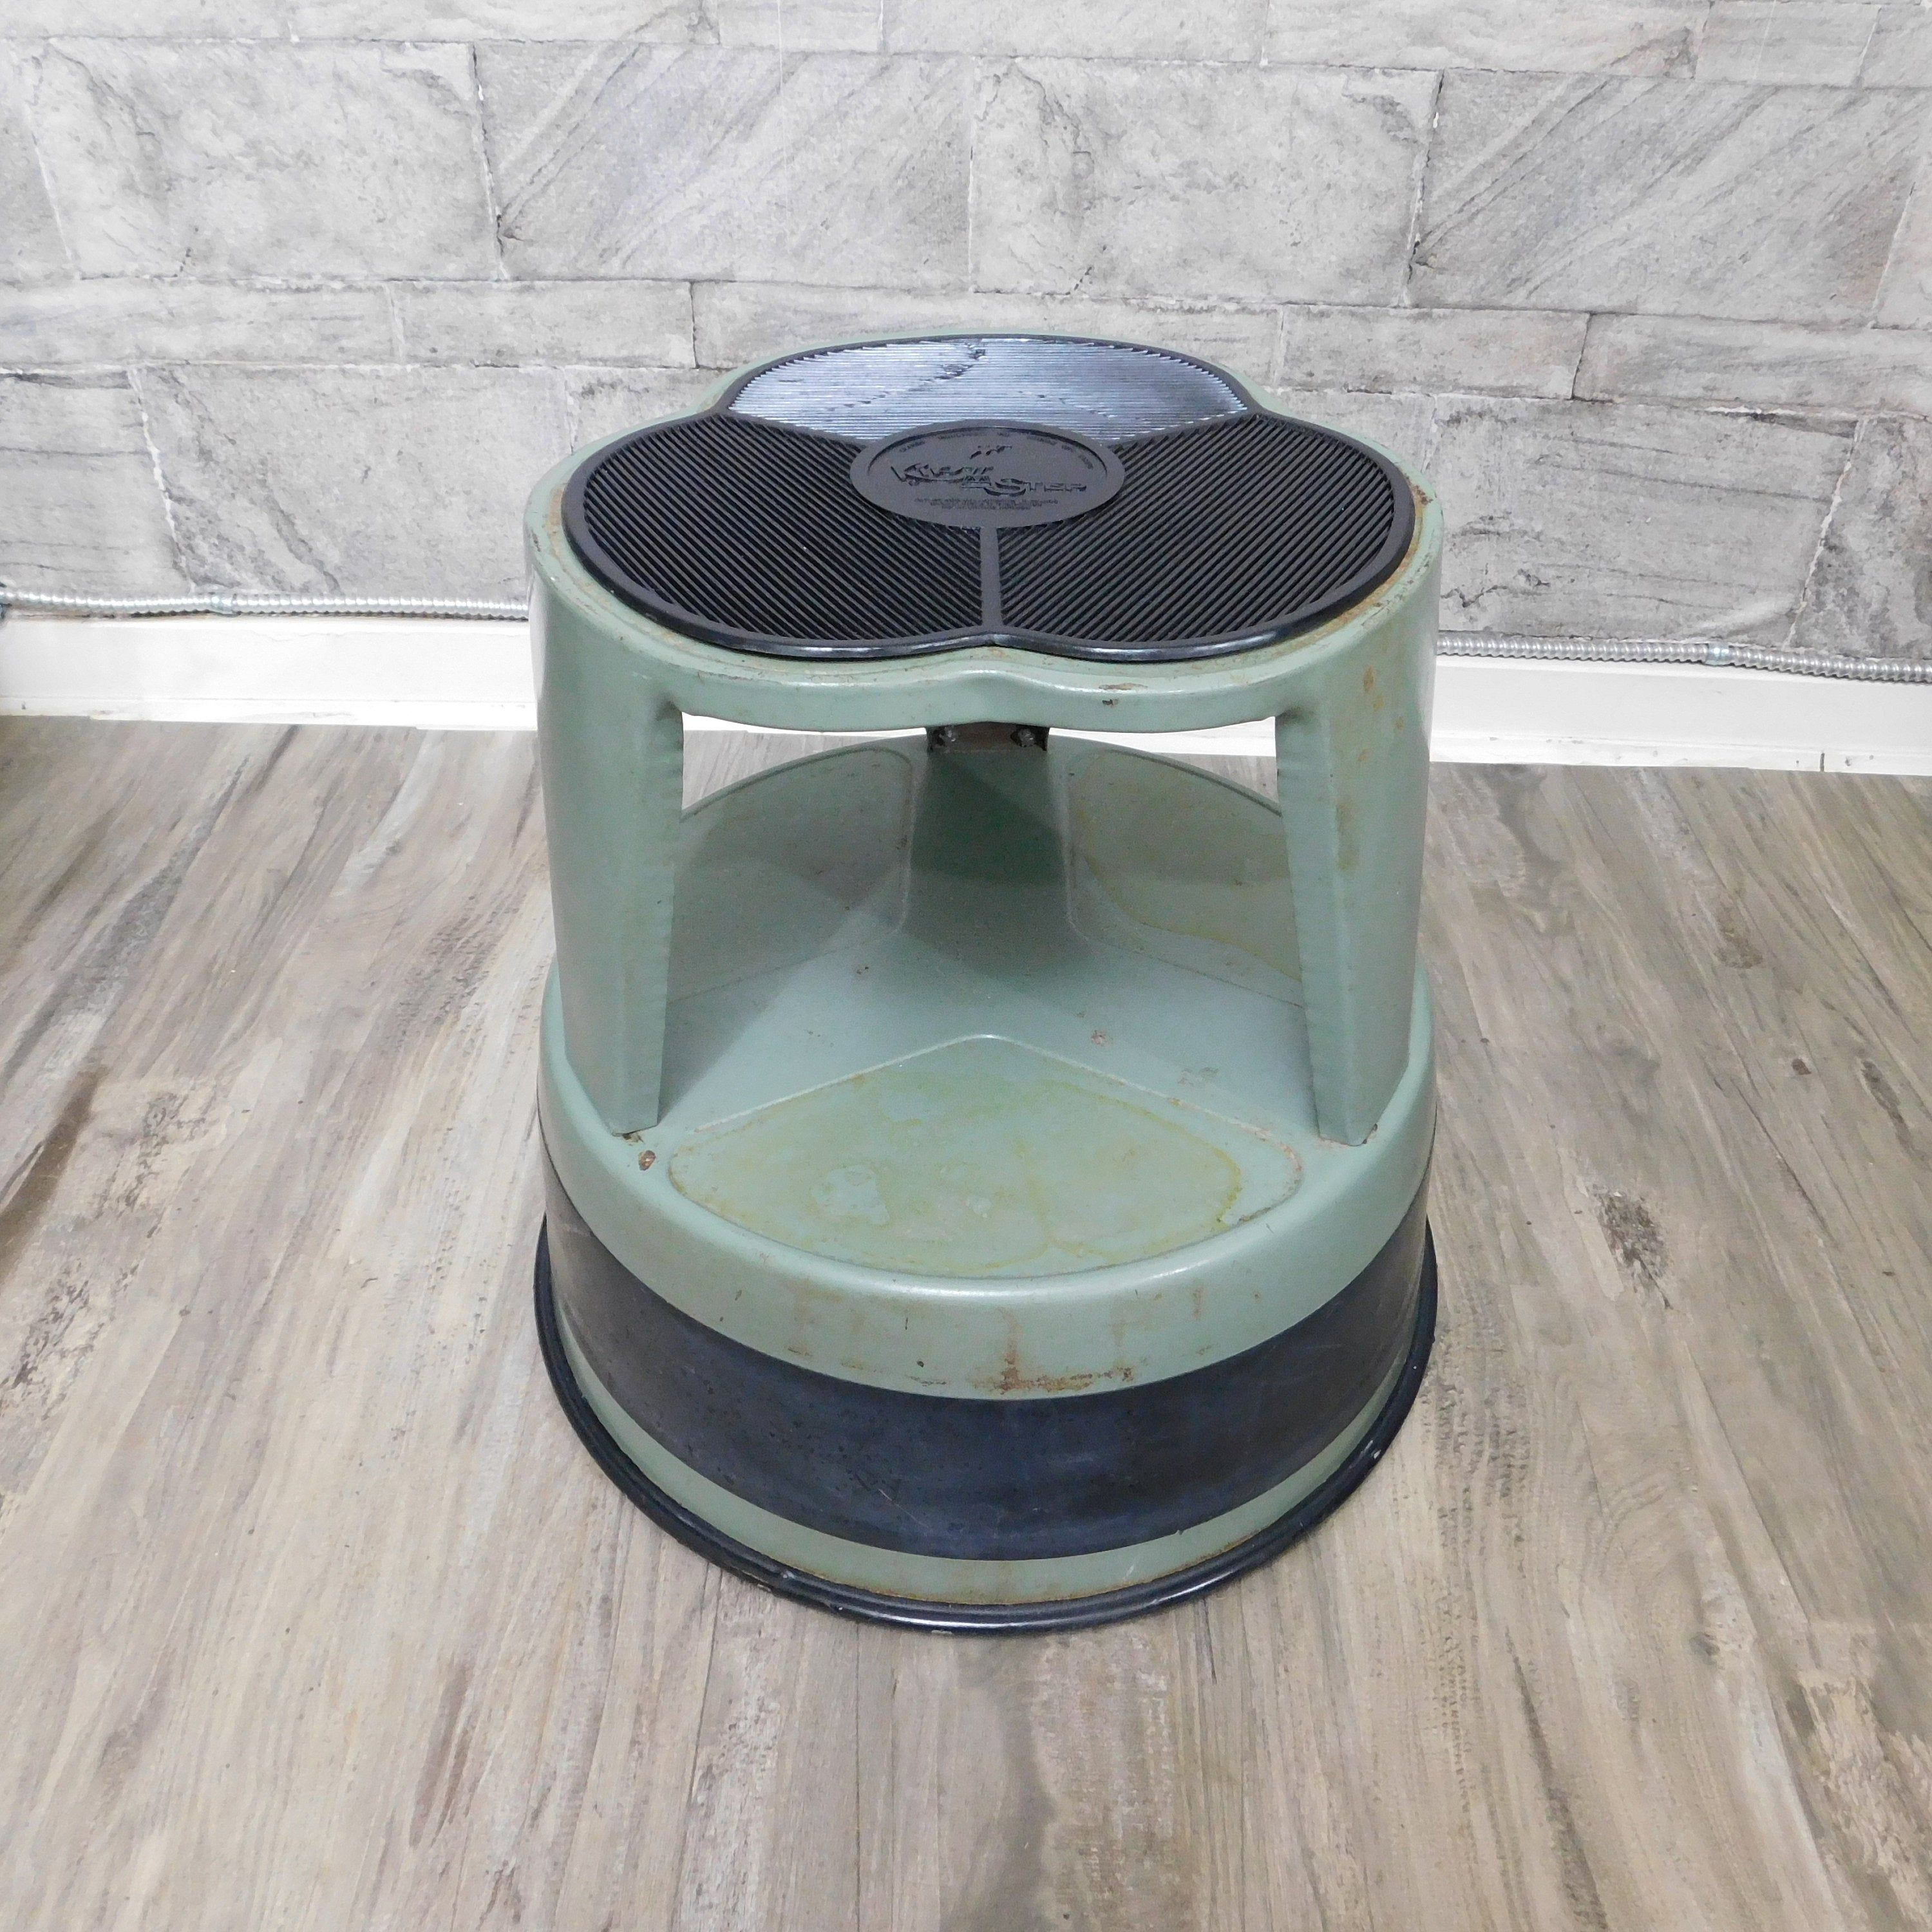 Kik Step Rolling Step Stool With Wheels Industrial Plant Stand 70s